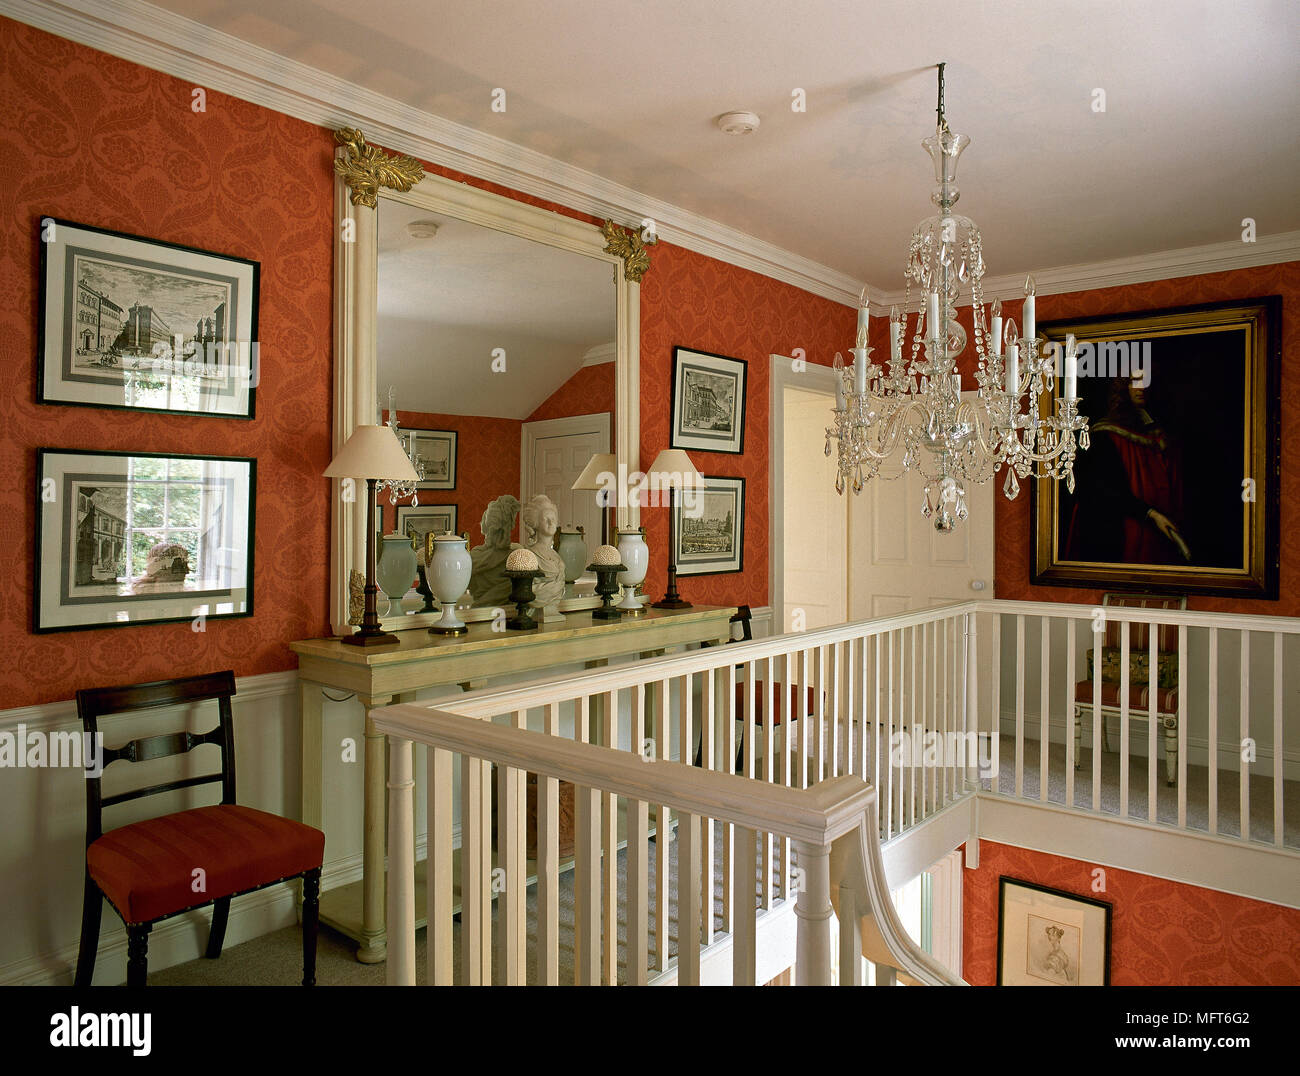 Traditional Second Floor Hallway With Red Wallpaper Crystal Chandelier Framed Mirror And Artwork A White Painted Banister